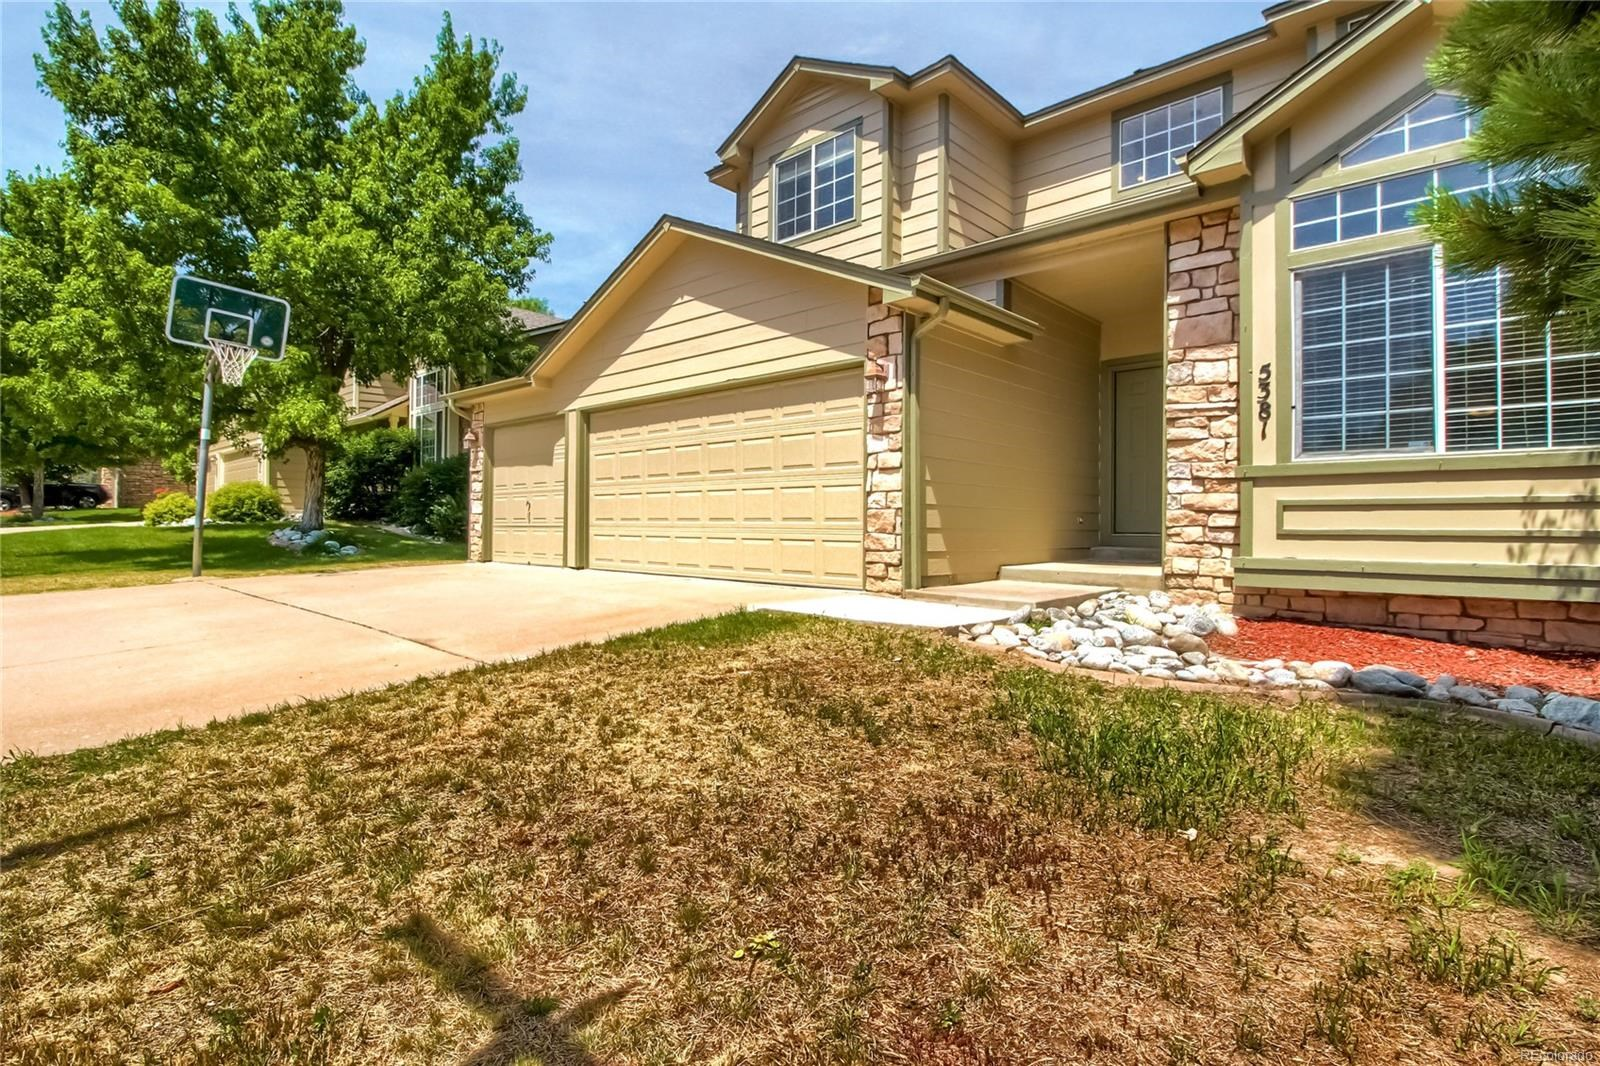 MLS# 1635730 - 2 - 5381 S Danube Court, Centennial, CO 80015